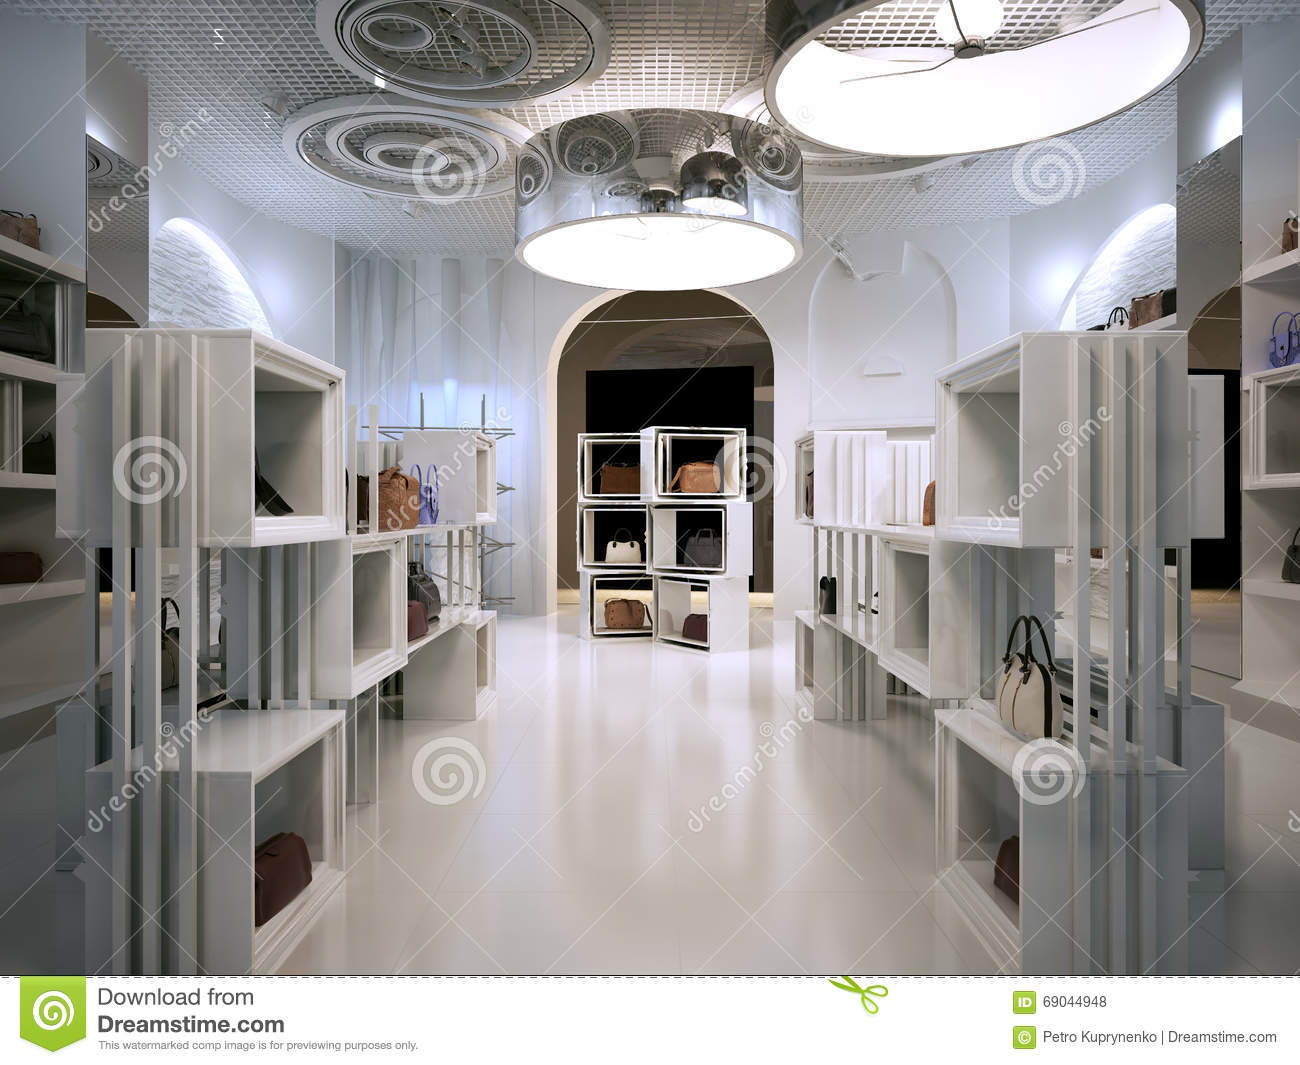 Luxury Store Interior Design Art Deco Style With Hints Of Contem Royalty Free Stock Photos